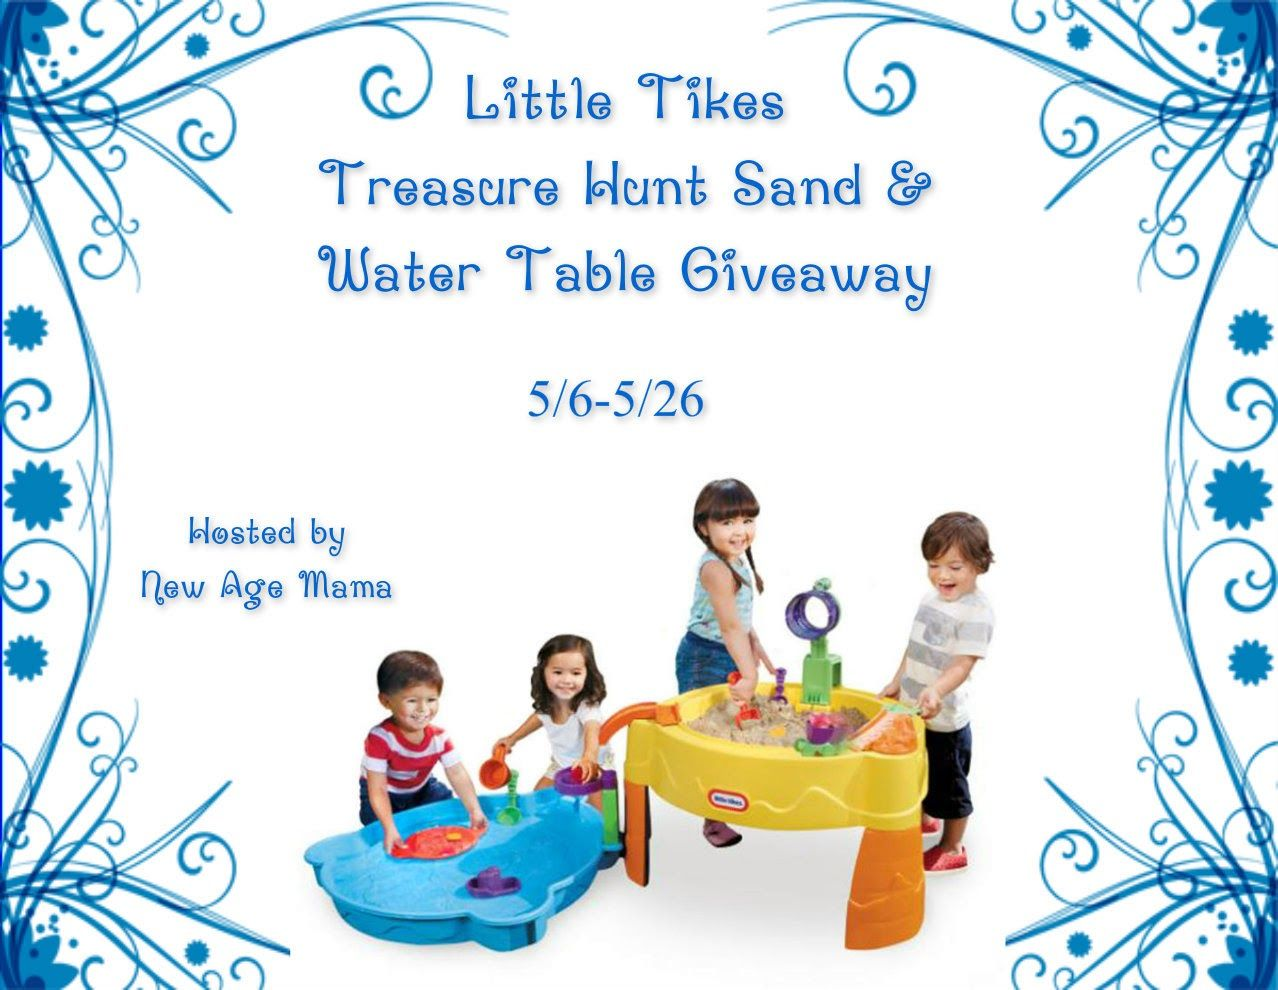 Little Tikes Treasure Hunt Sand & Water Table Giveaway - Ends 5/26/15 10 am